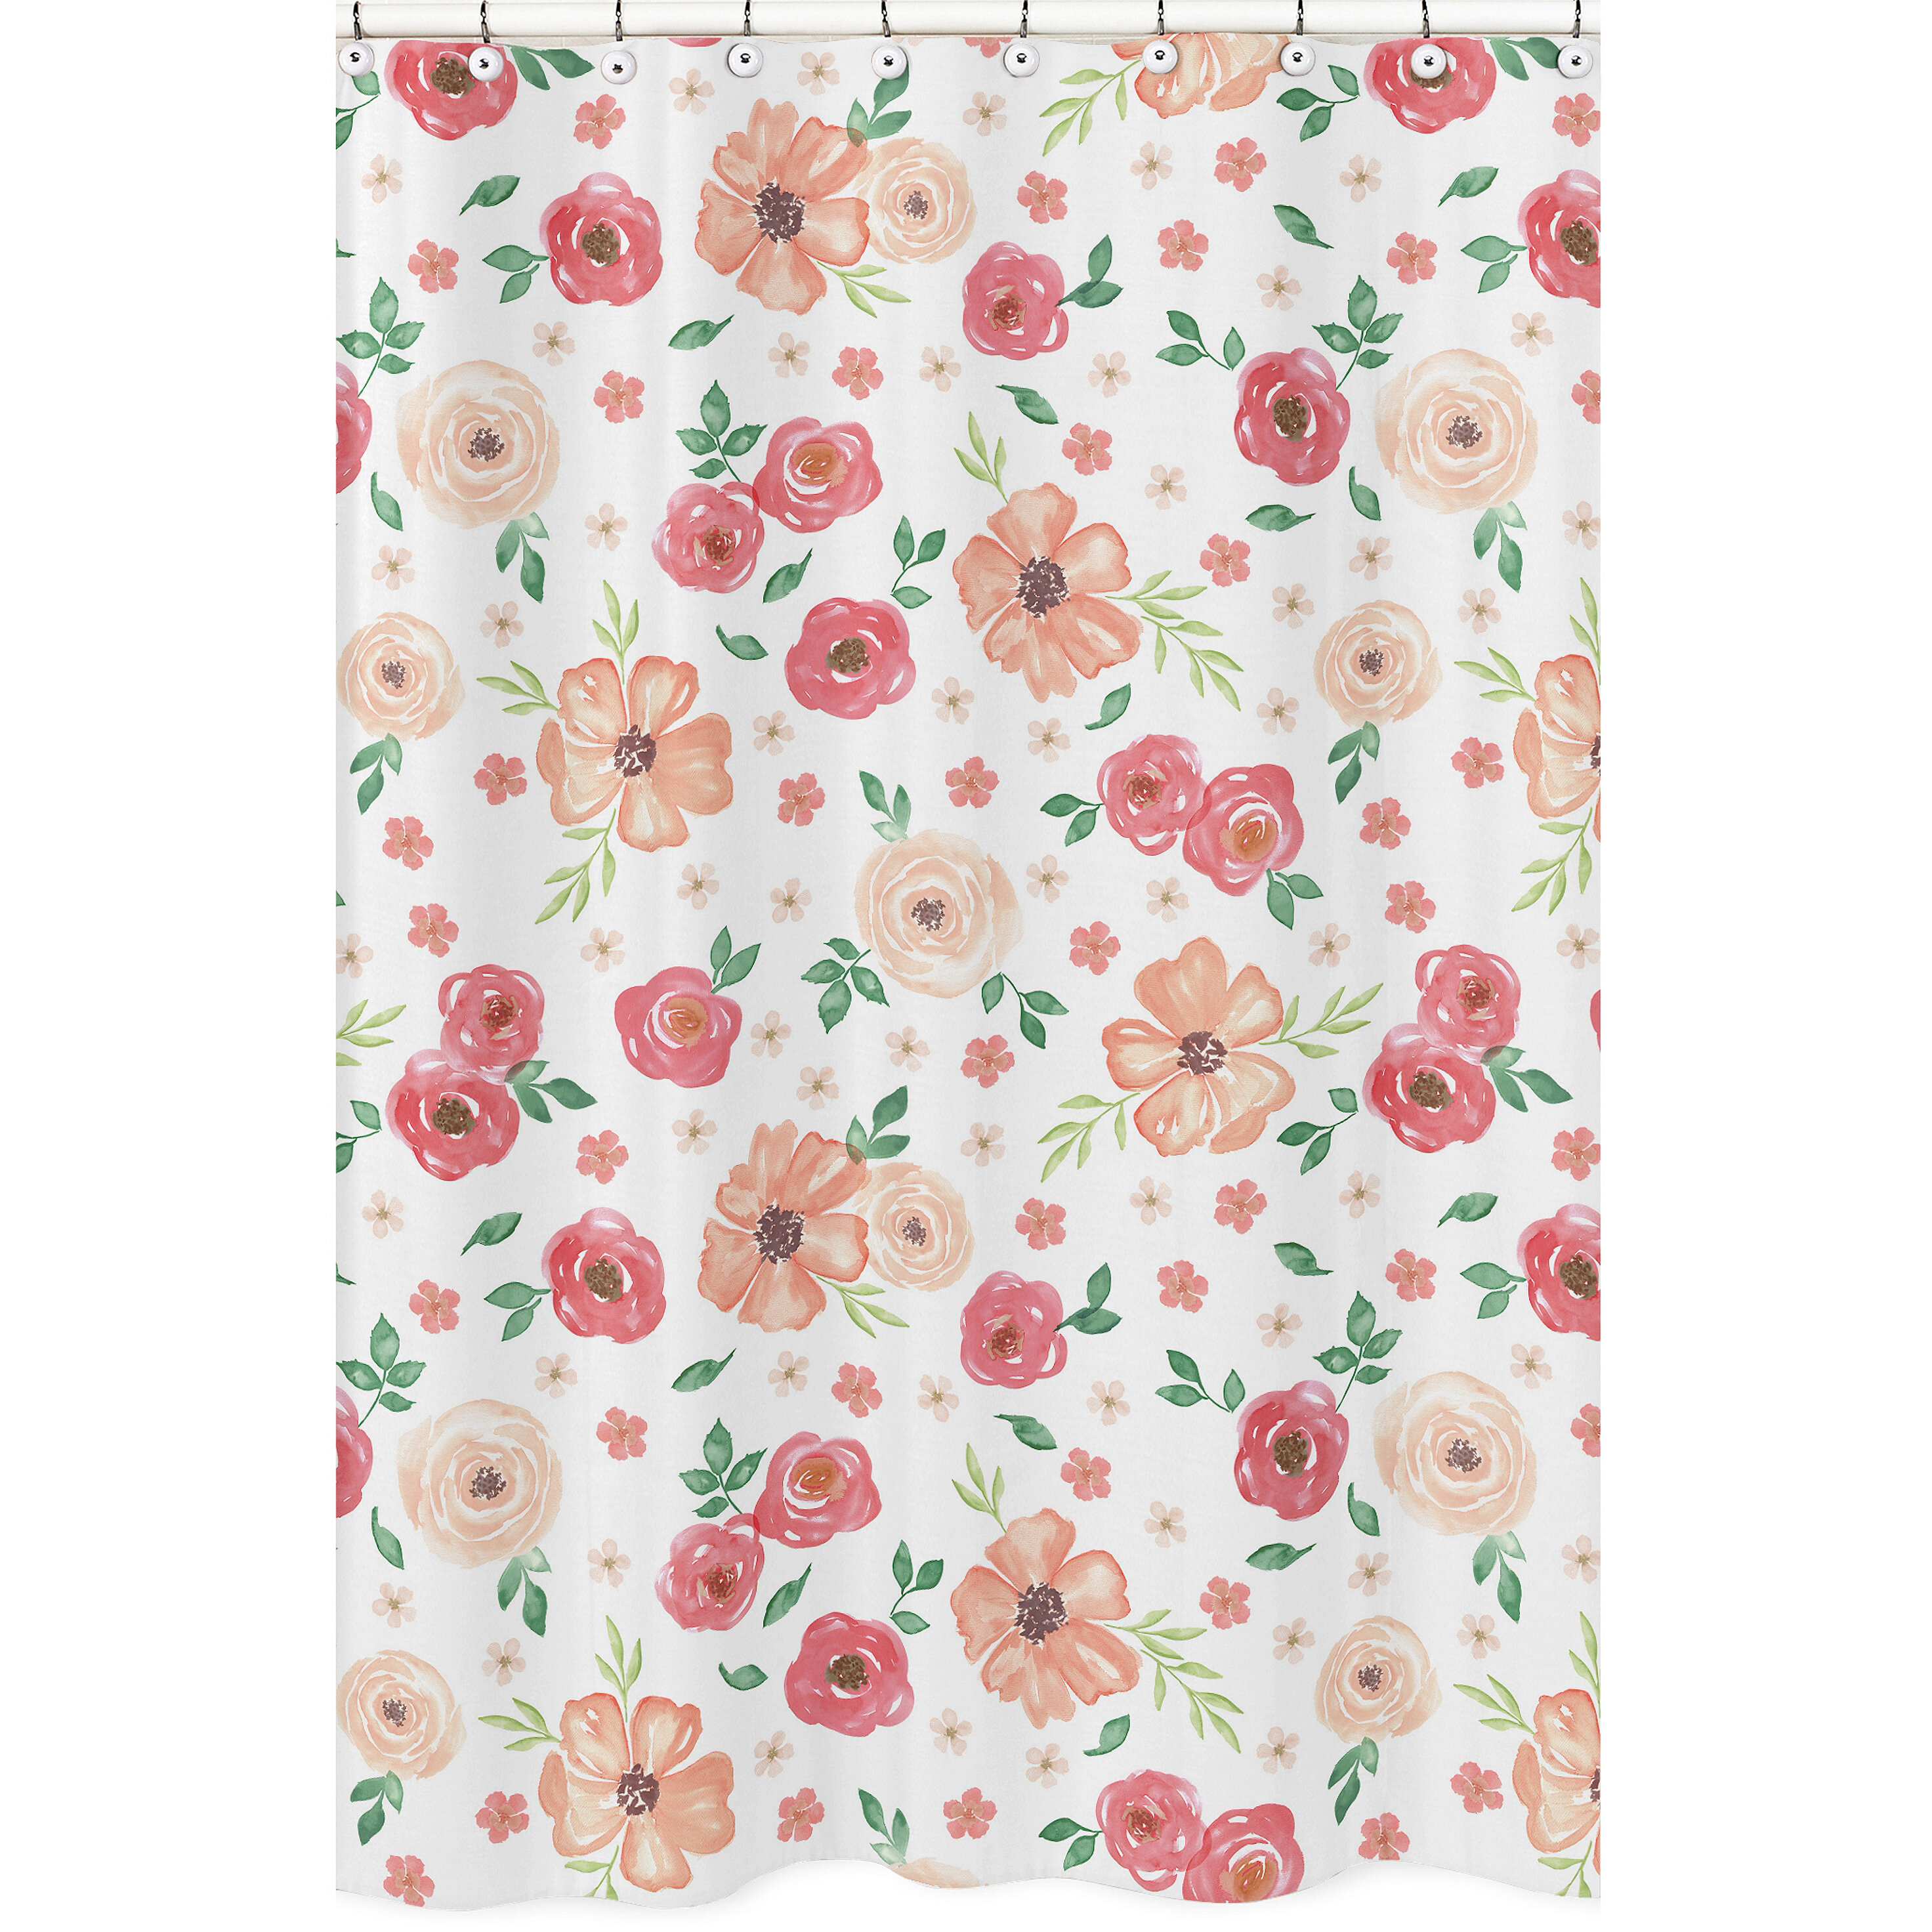 Sweet Jojo Designs Watercolor Floral Shower Curtain